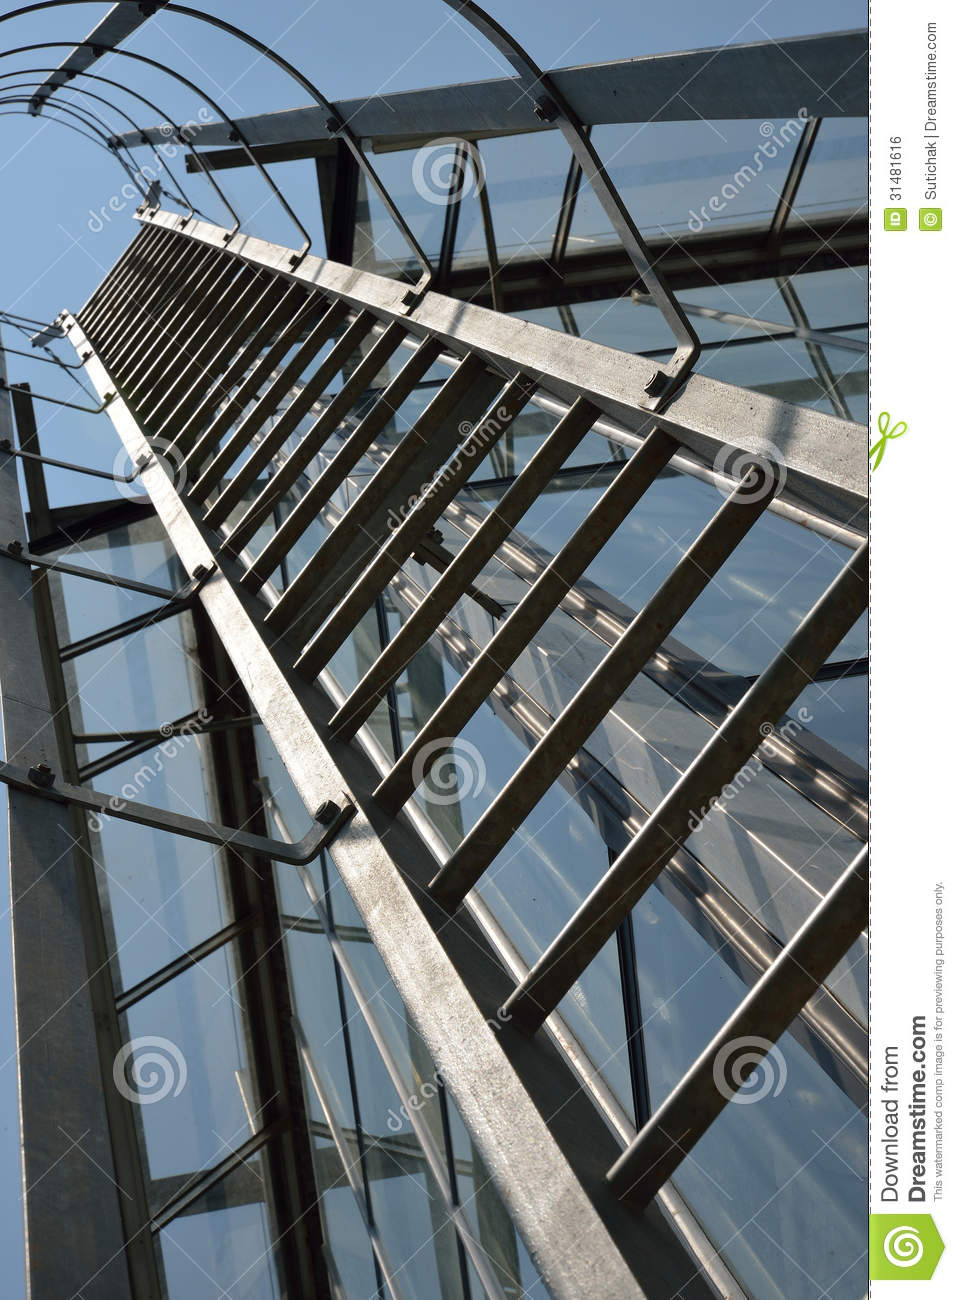 Apartment Building Fire Escape Ladder fire escape ladder on a building royalty free stock image - image